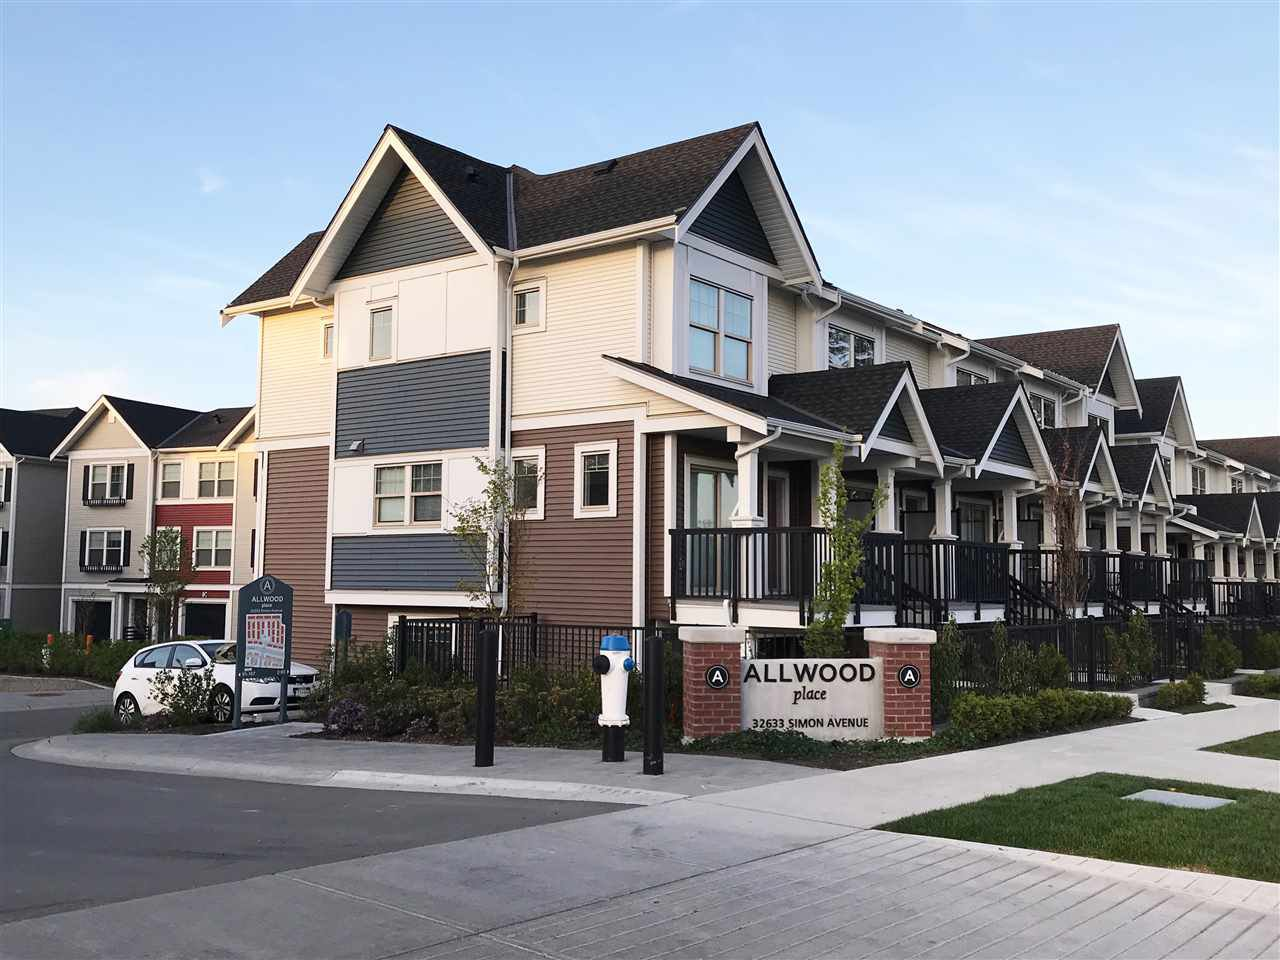 """Main Photo: 88 32633 SIMON Avenue in Abbotsford: Abbotsford West Townhouse for sale in """"Allwood Place"""" : MLS®# R2279009"""